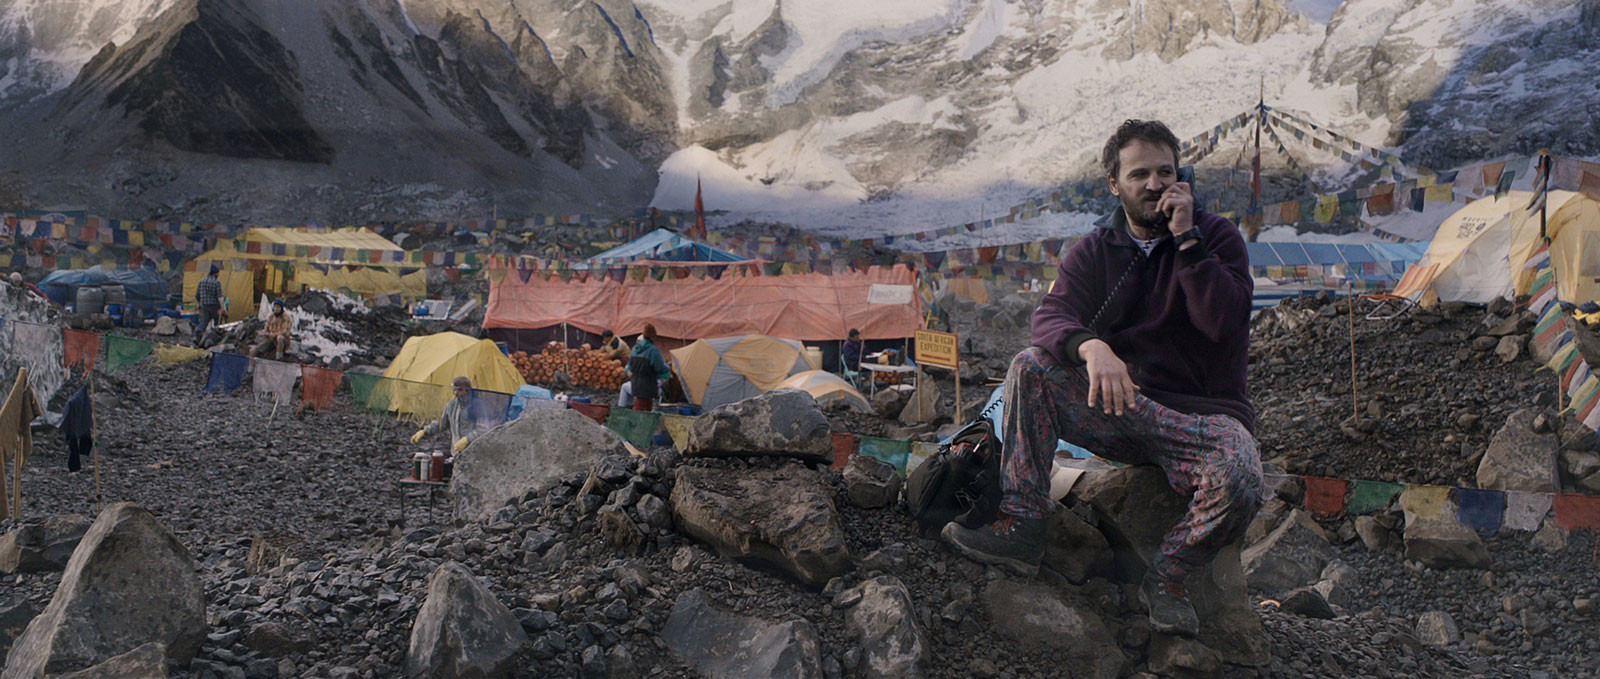 an analysis of the characters in everest by baltasar kormkur Unlike most editing & proofreading services, we edit for everything: grammar, spelling, punctuation, idea flow, sentence structure, & more get started now.